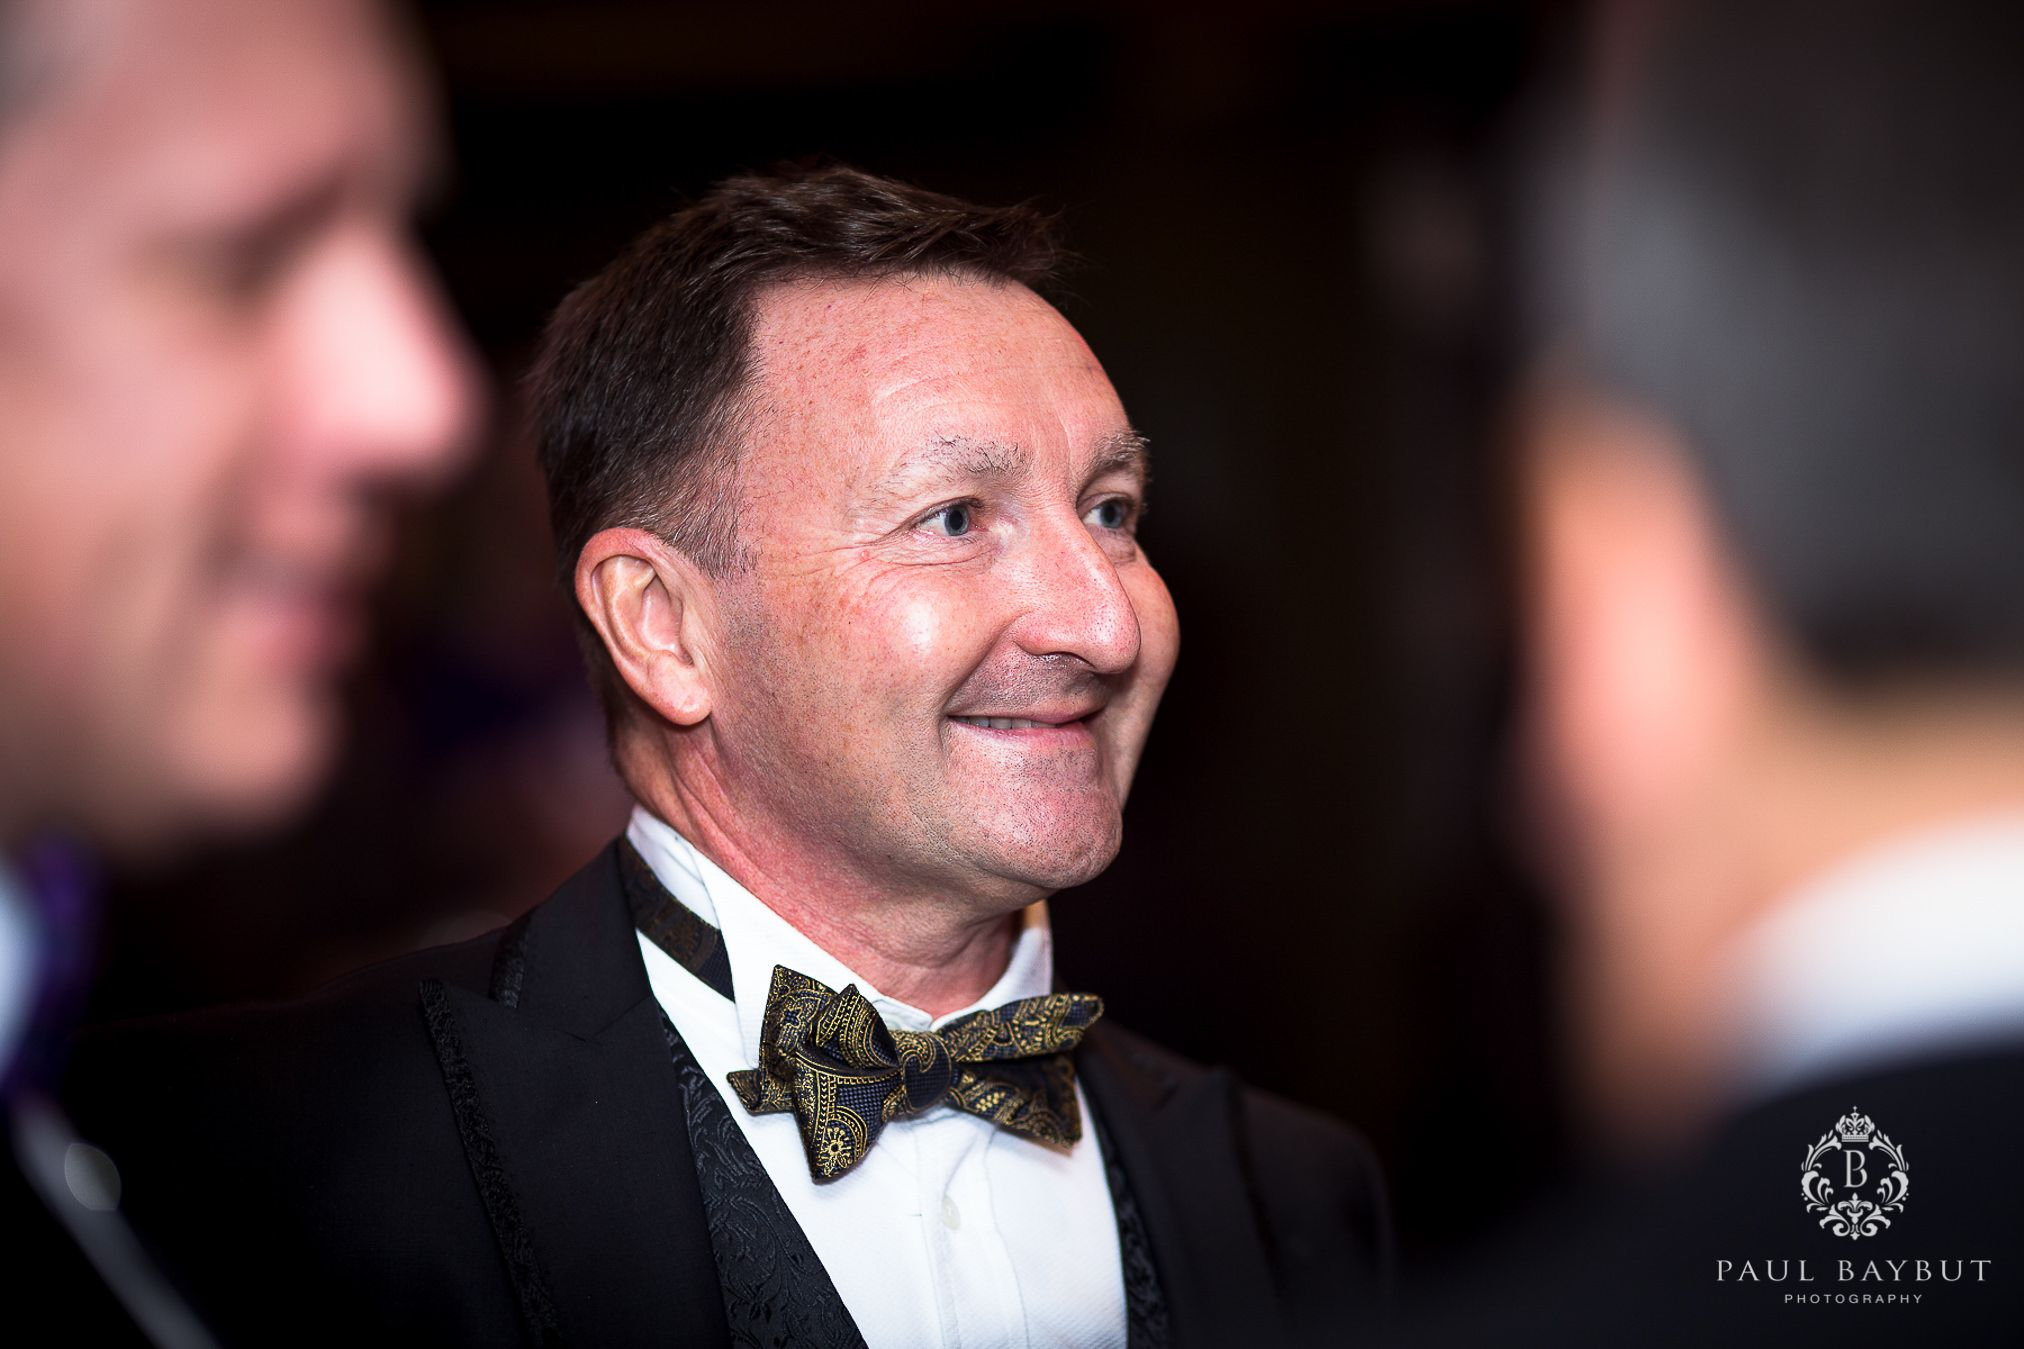 Smiling male guest at a fundraising charity ball event in Manchester